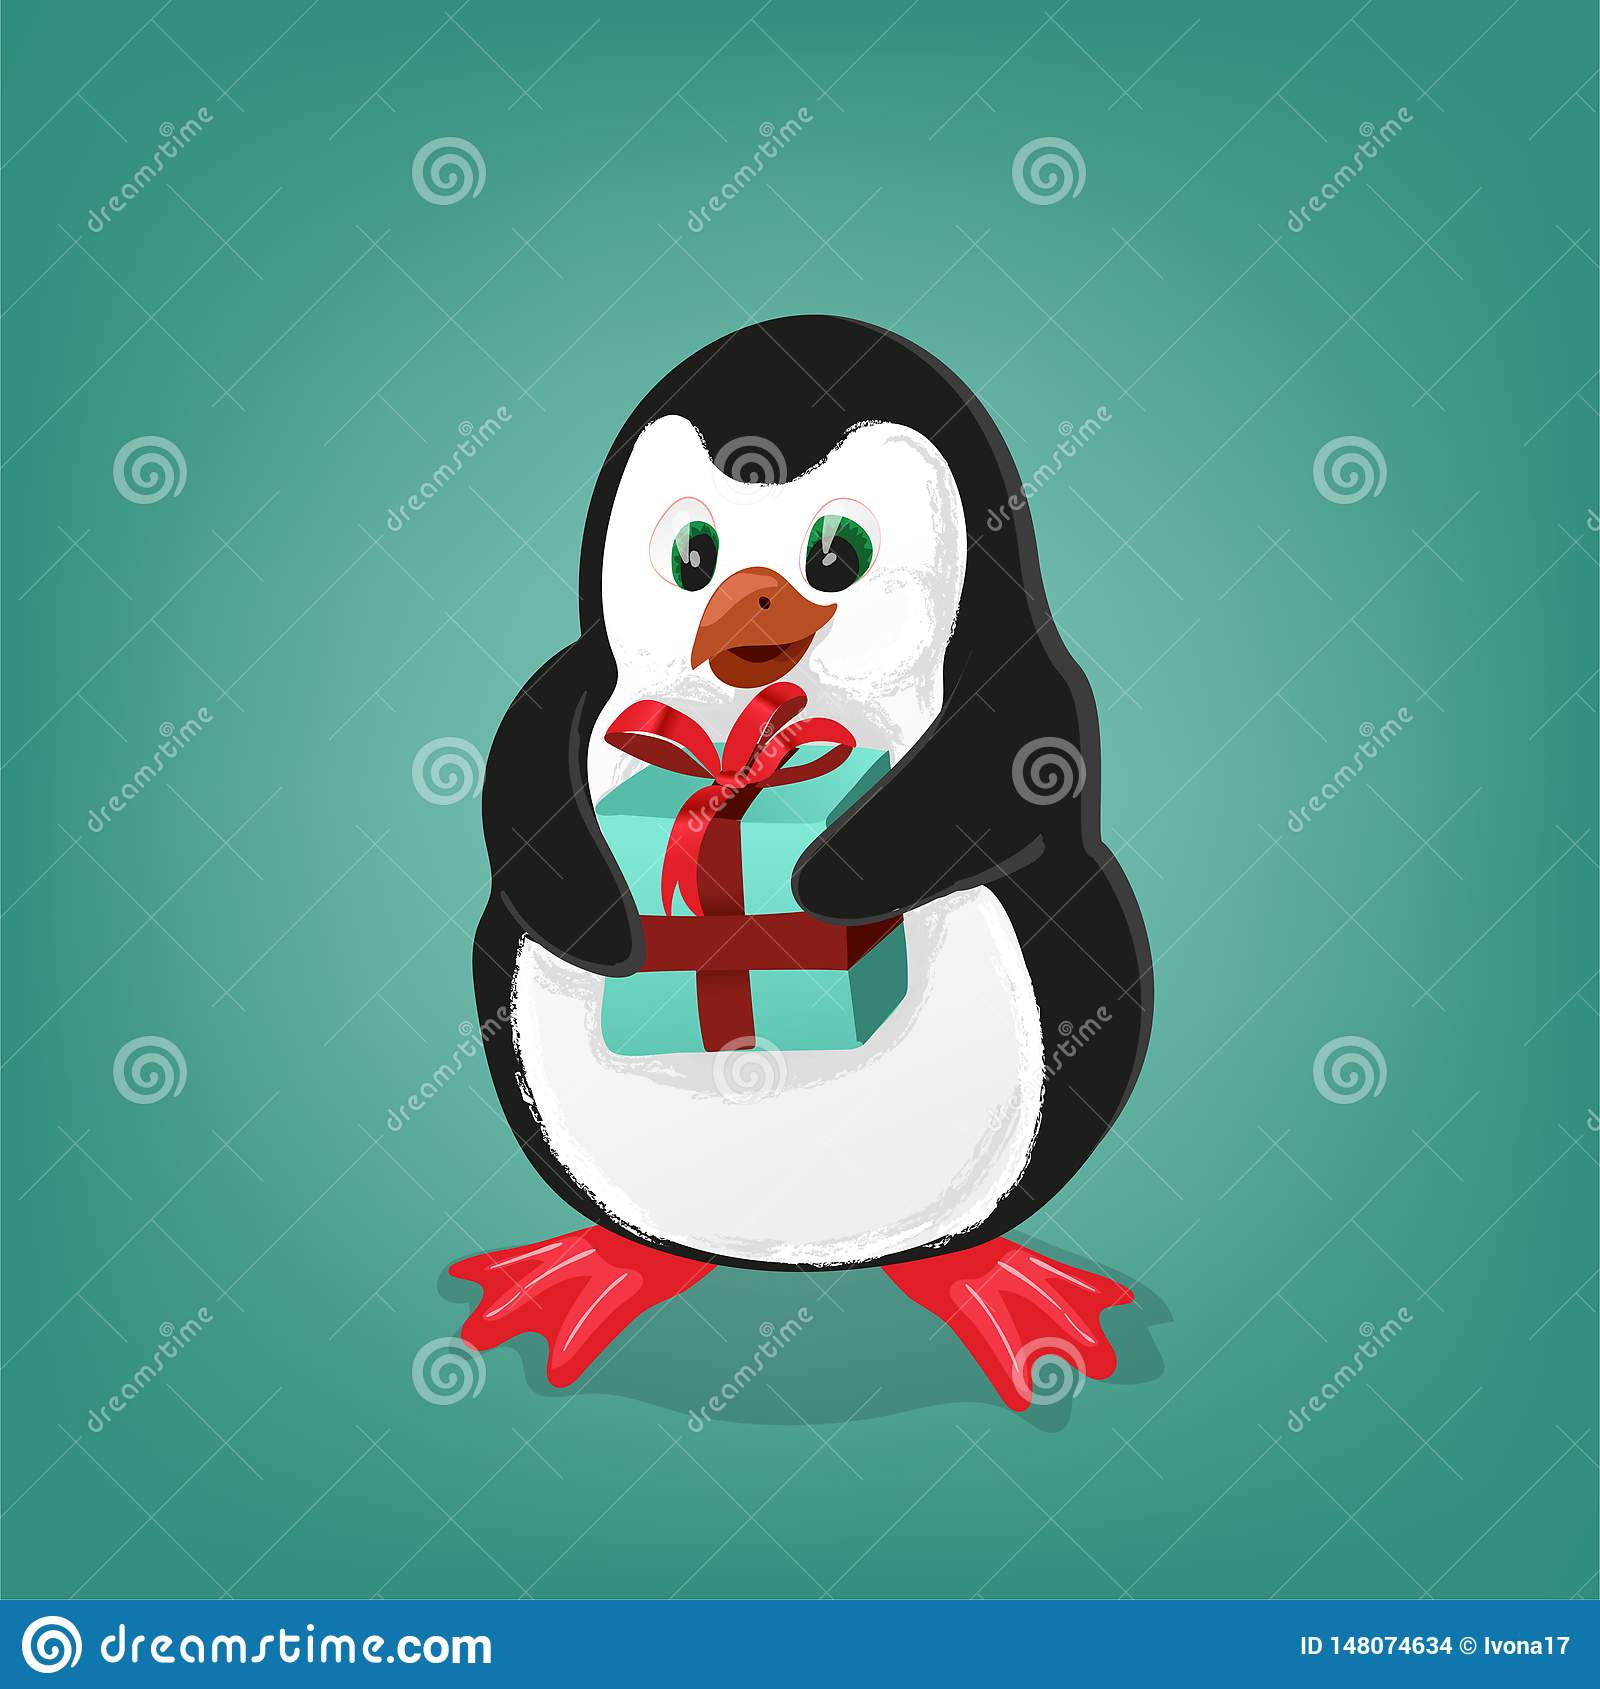 Penguin with present Christmas card vector illustration